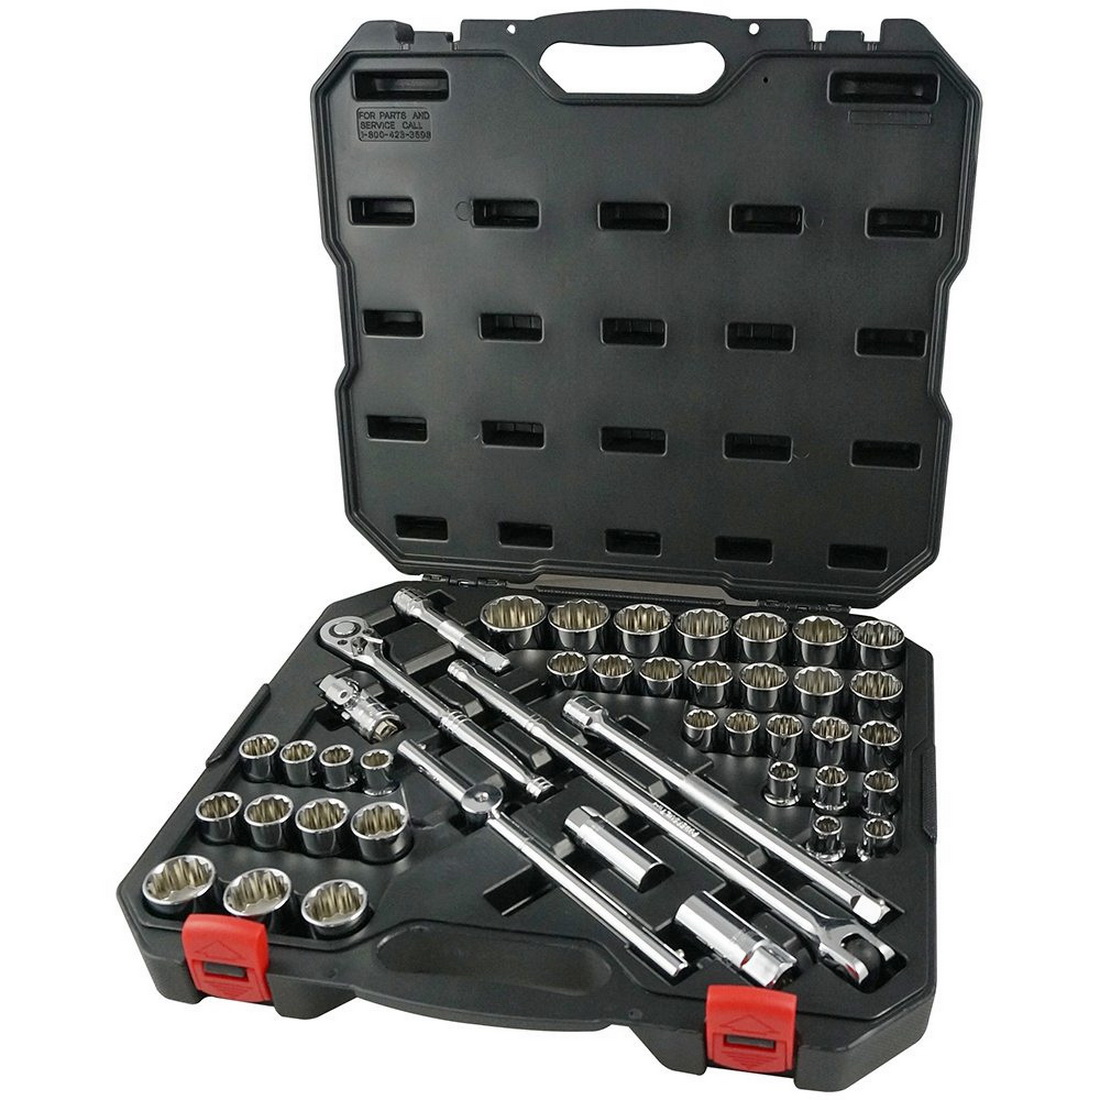 44 Piece Metric/Imperial Comb Socket Set 1/2 Inch